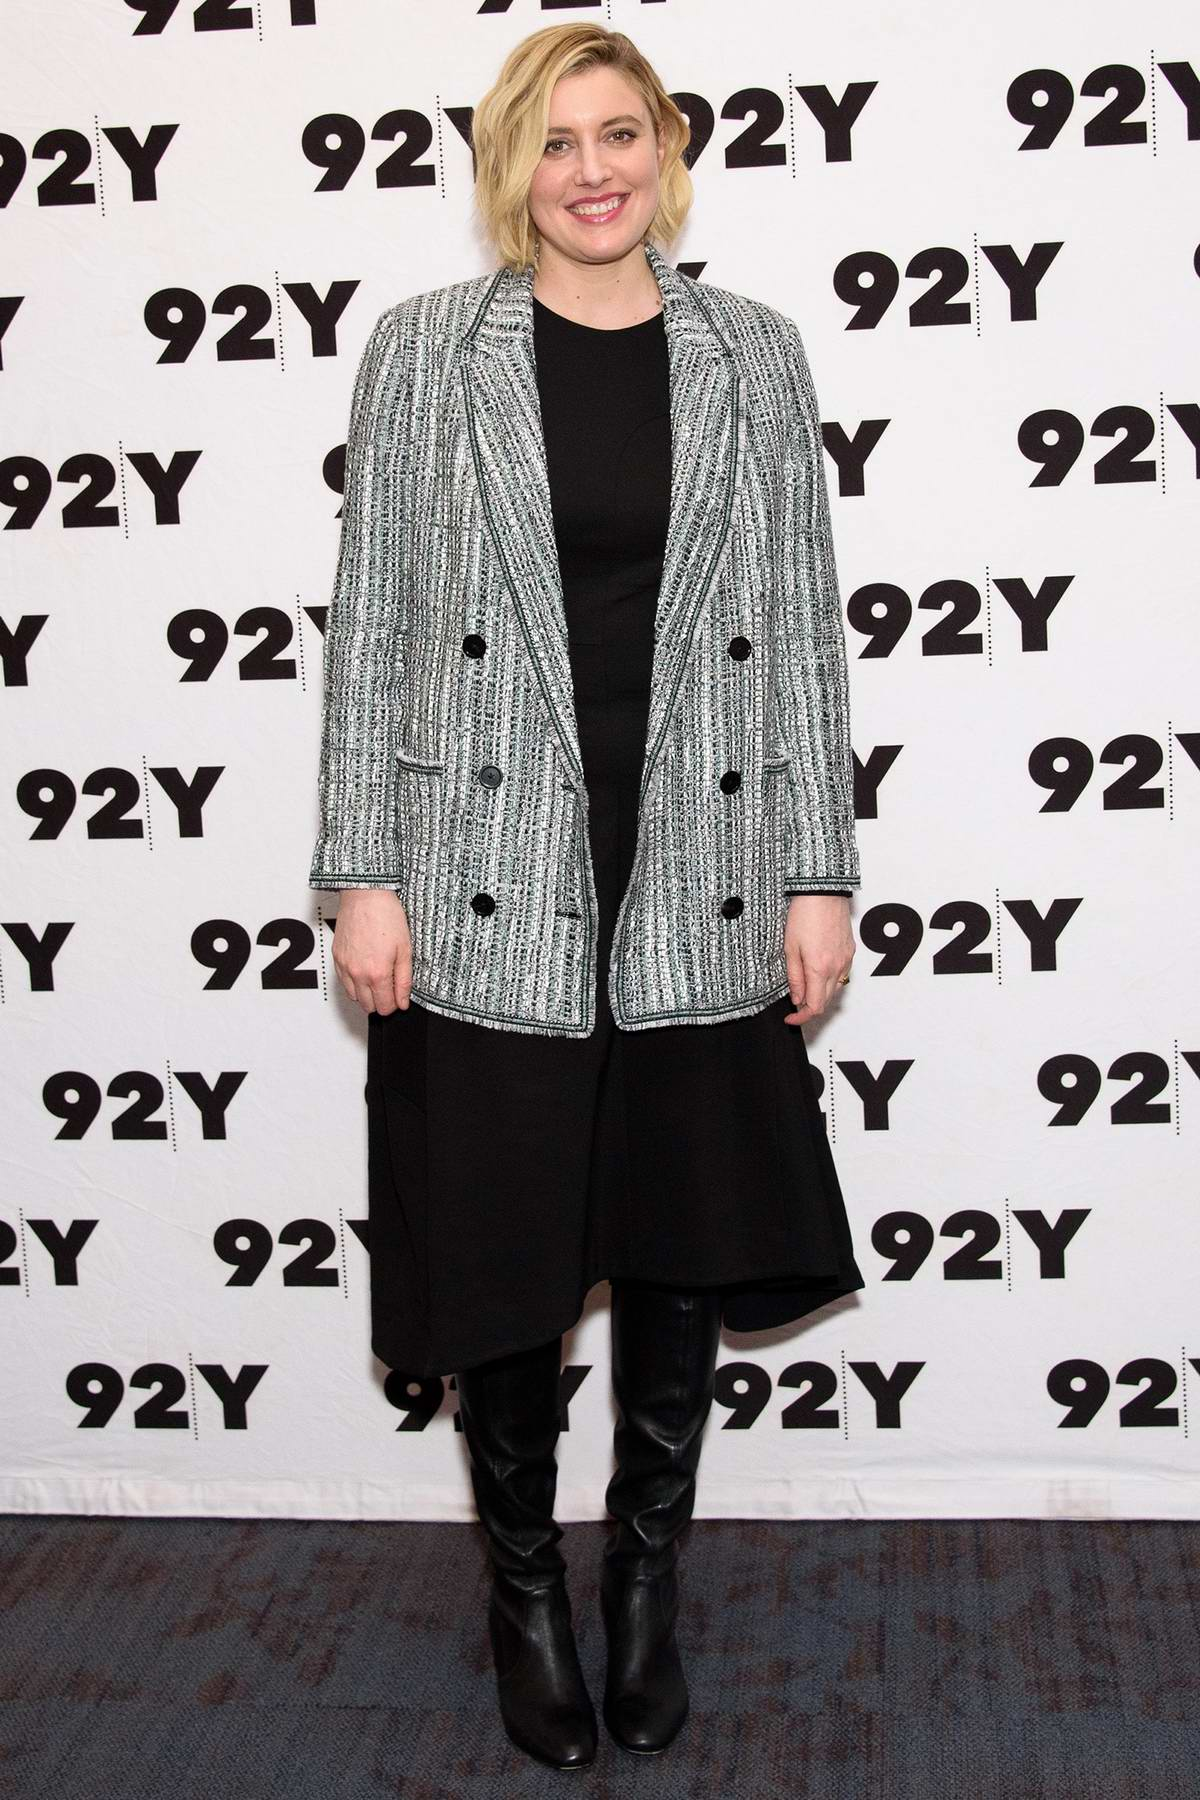 Greta Gerwig attends 'Little Women' Screening at 92nd Street Y in New York City